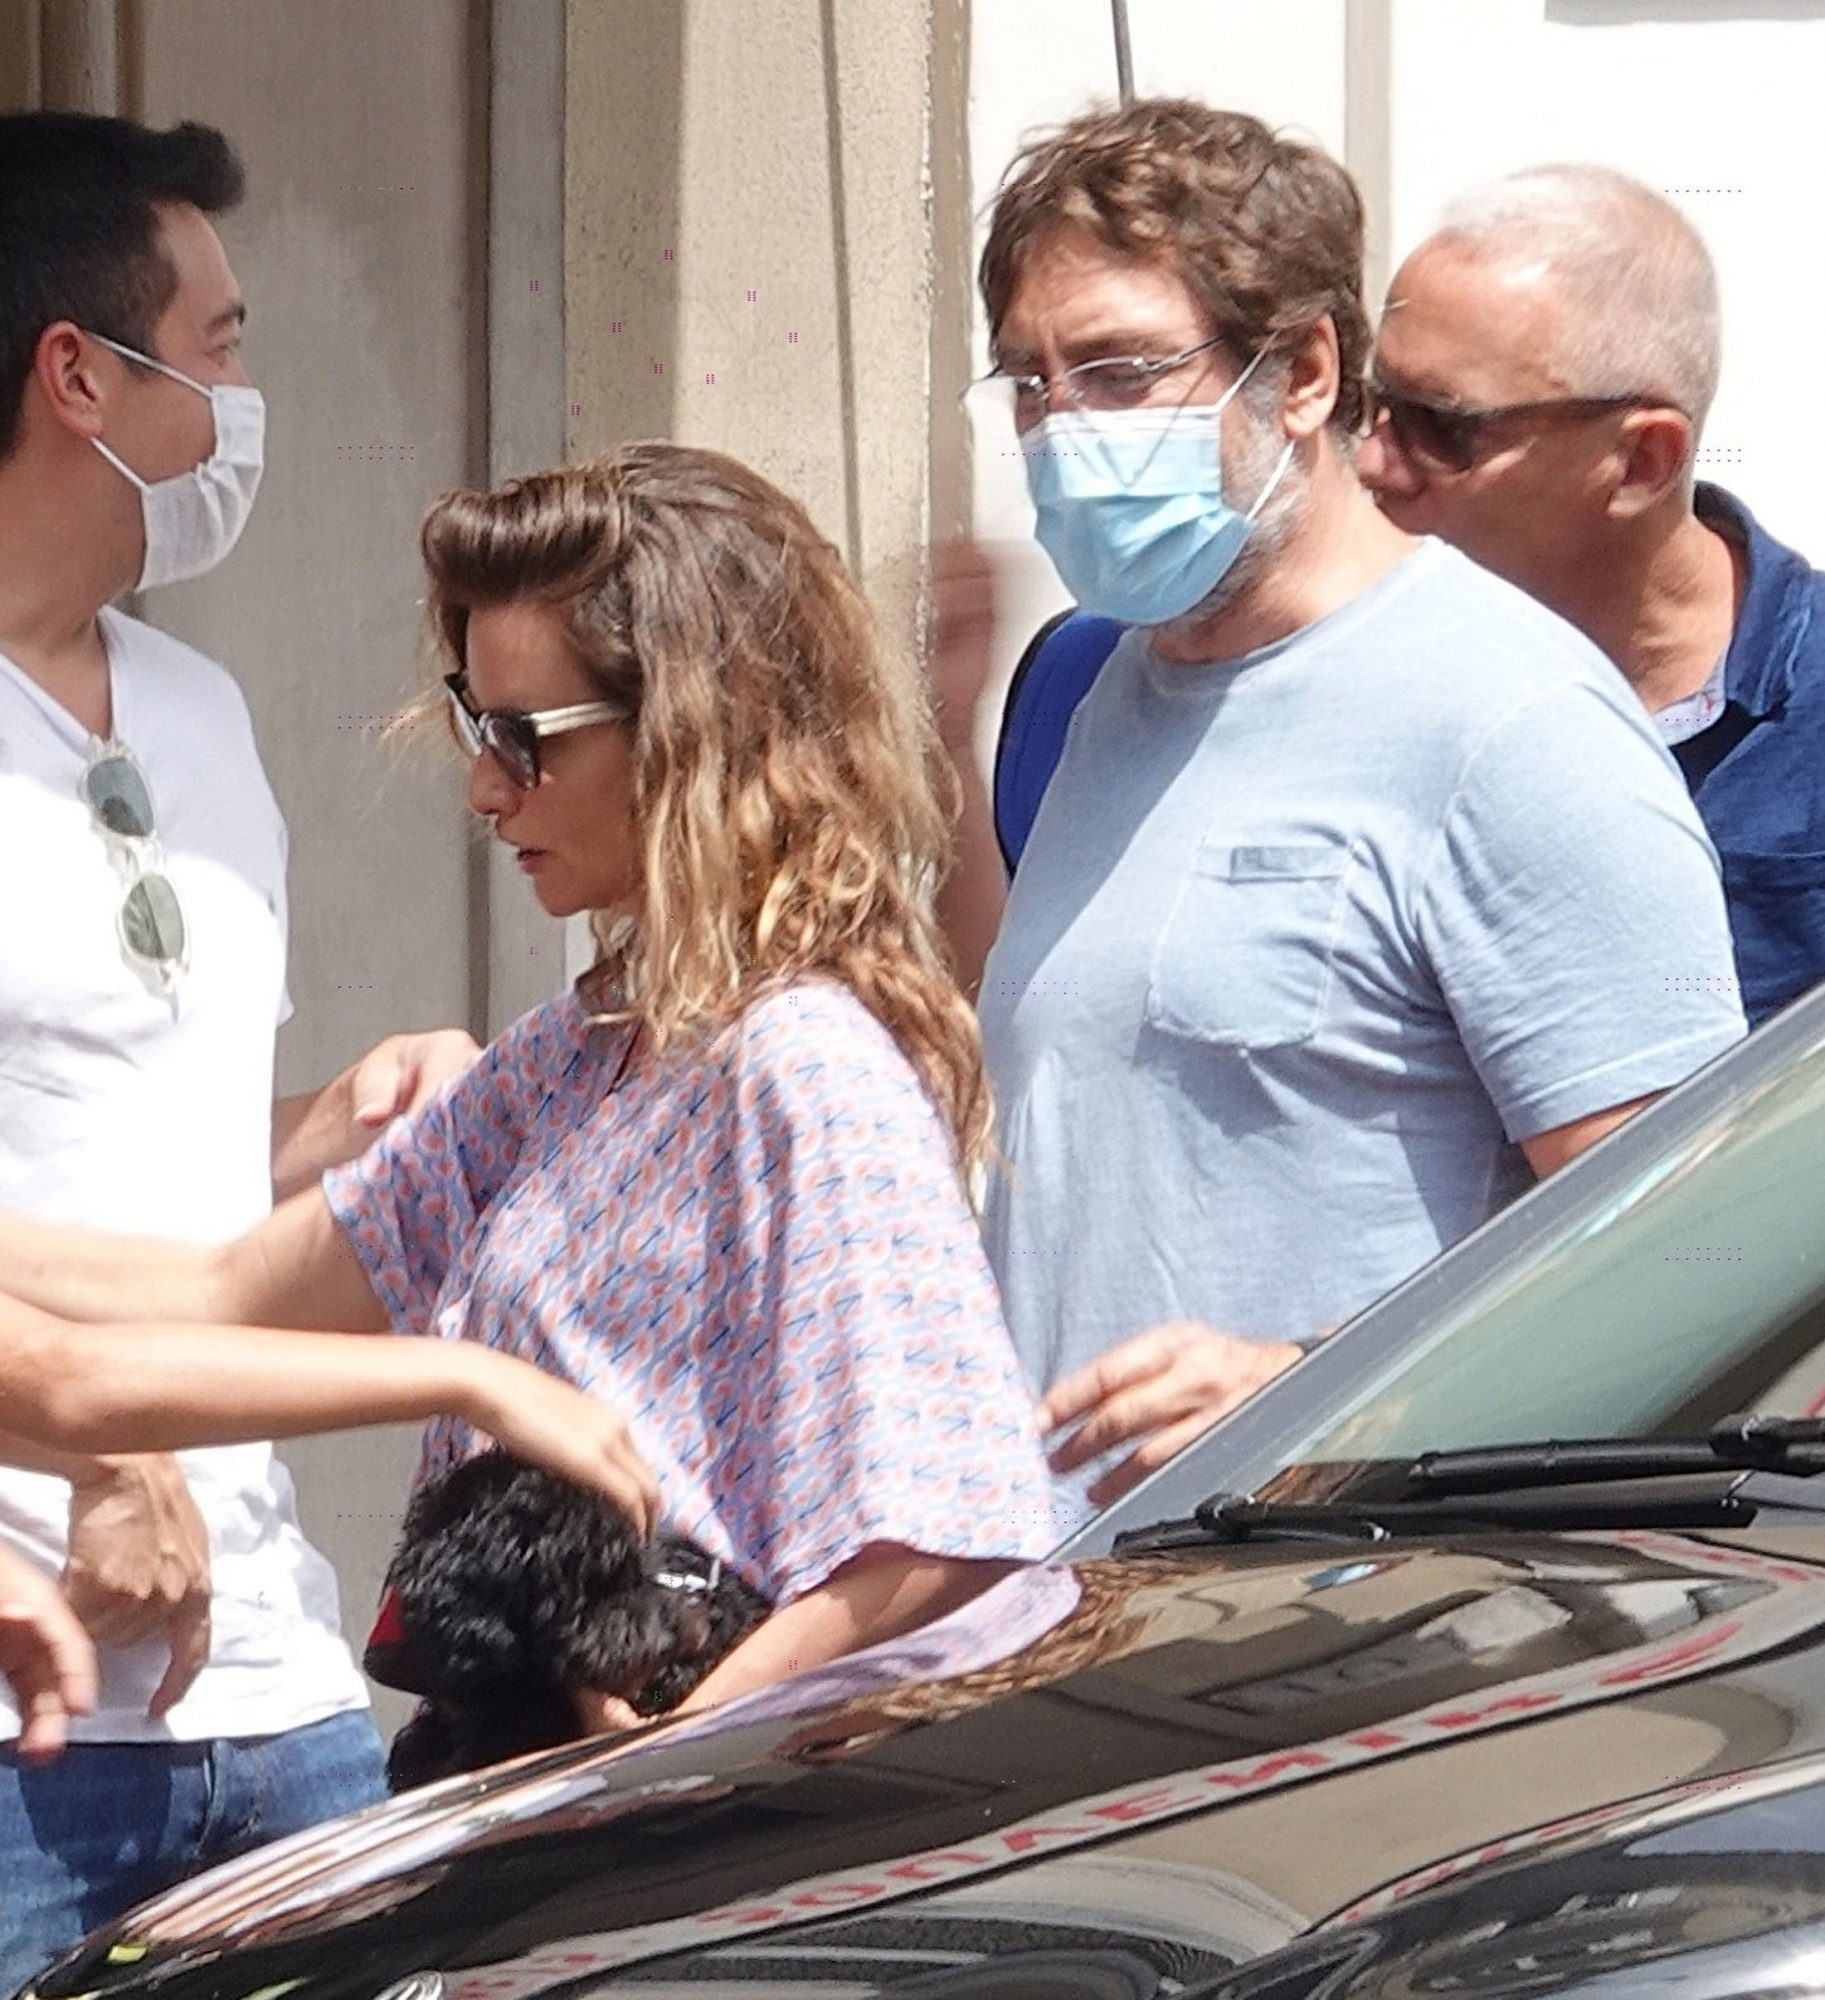 Penelope Cruz & Javier Bardem Visit the Vatican Museums on a Sightseeing Day Out